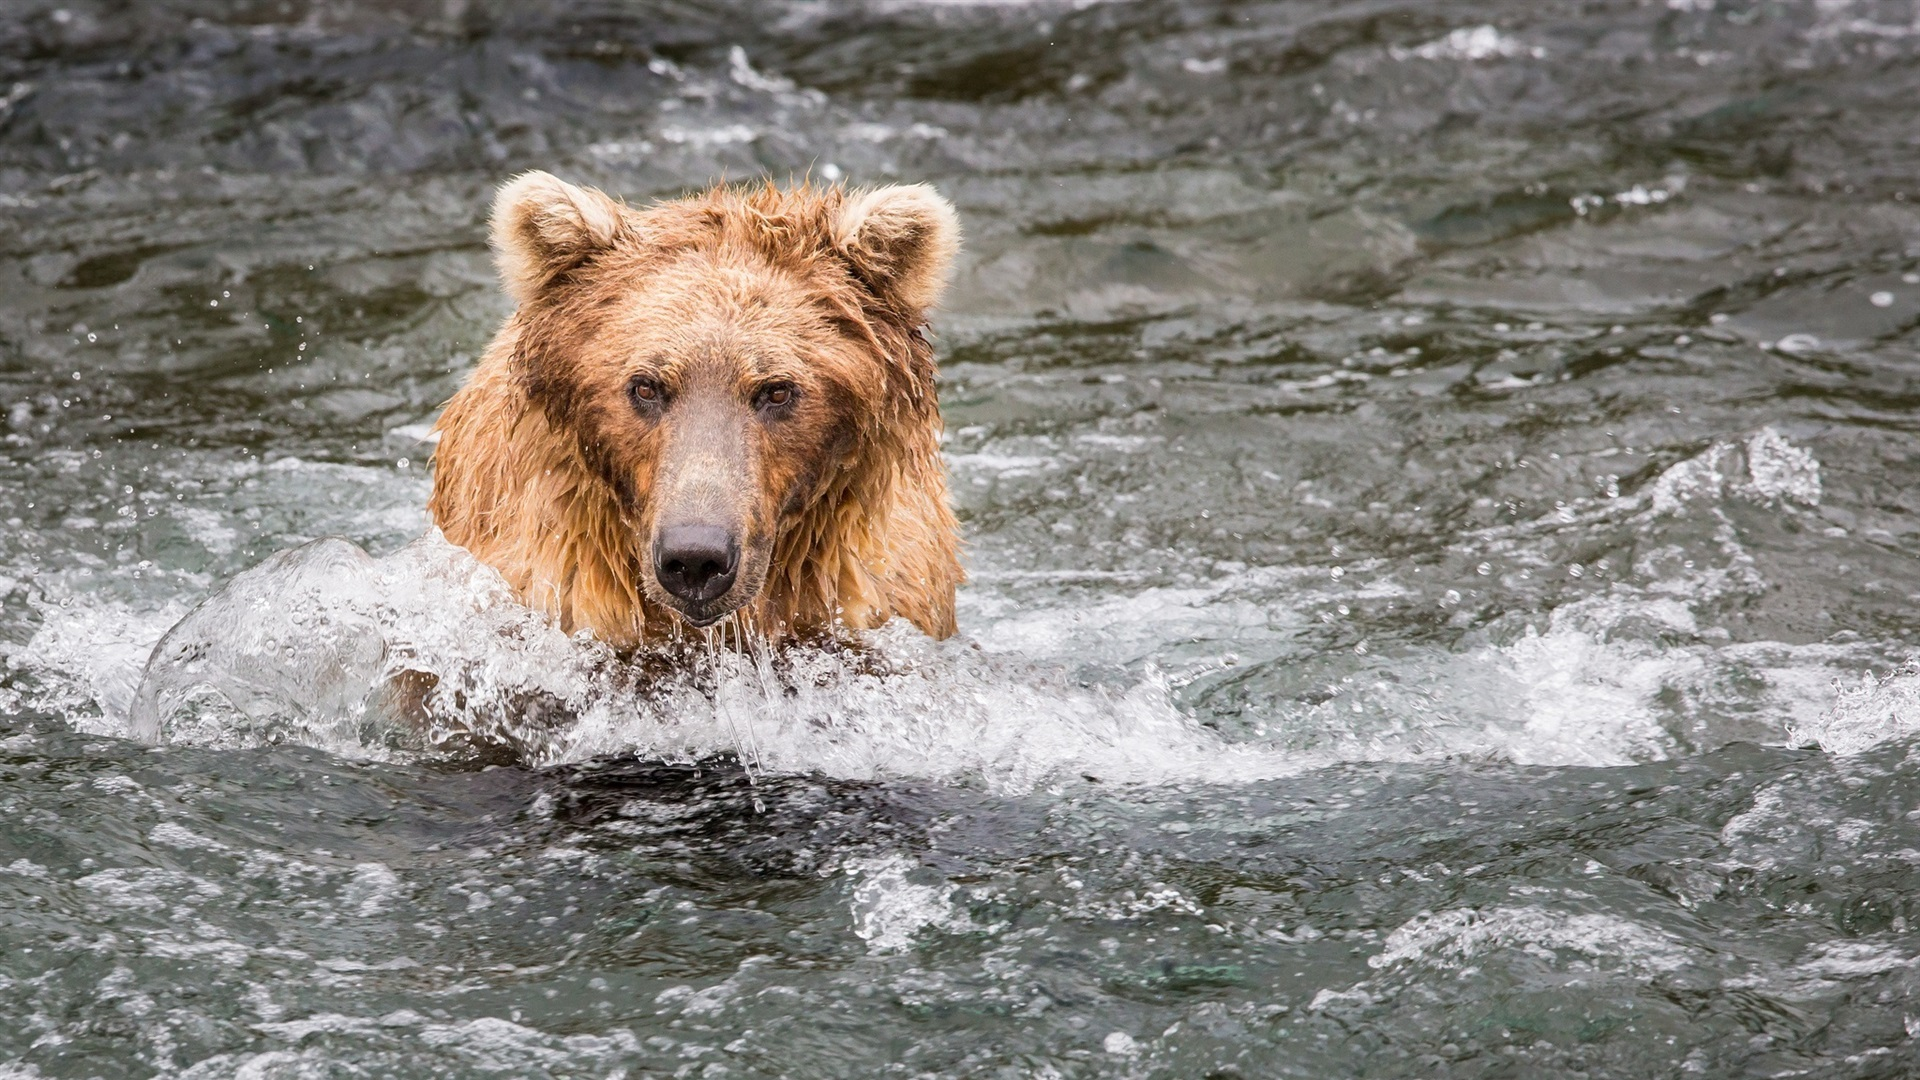 Pictures of bears fishing 85 best Grizzly Salmon images on Pinterest Grizzly bears, Wild